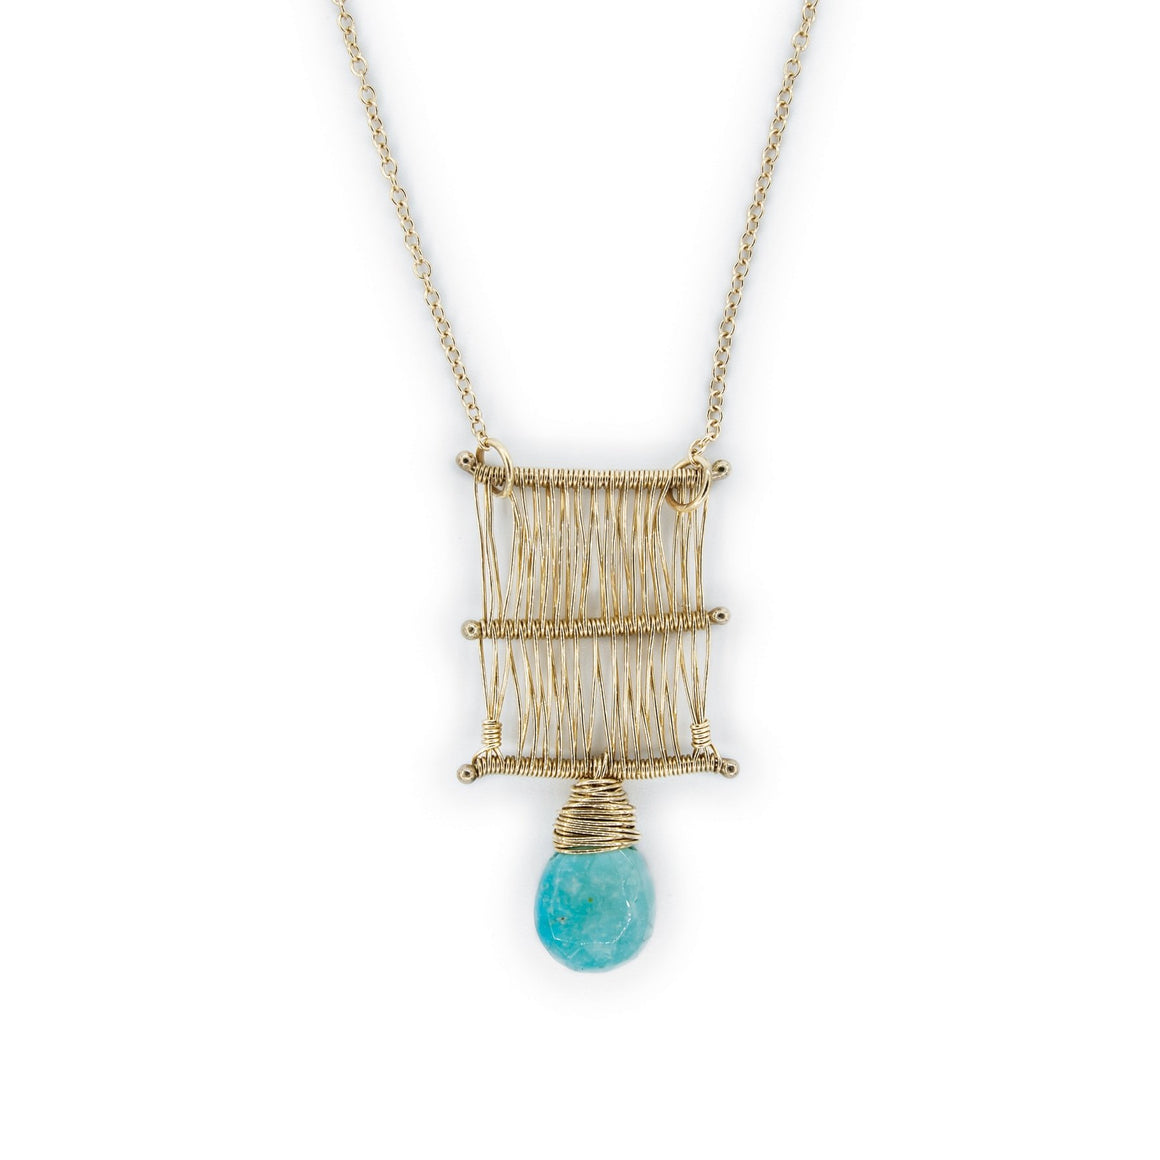 14k Gold and Turquoise Hand Woven Tapestry Necklace by Original Sin Jewelry